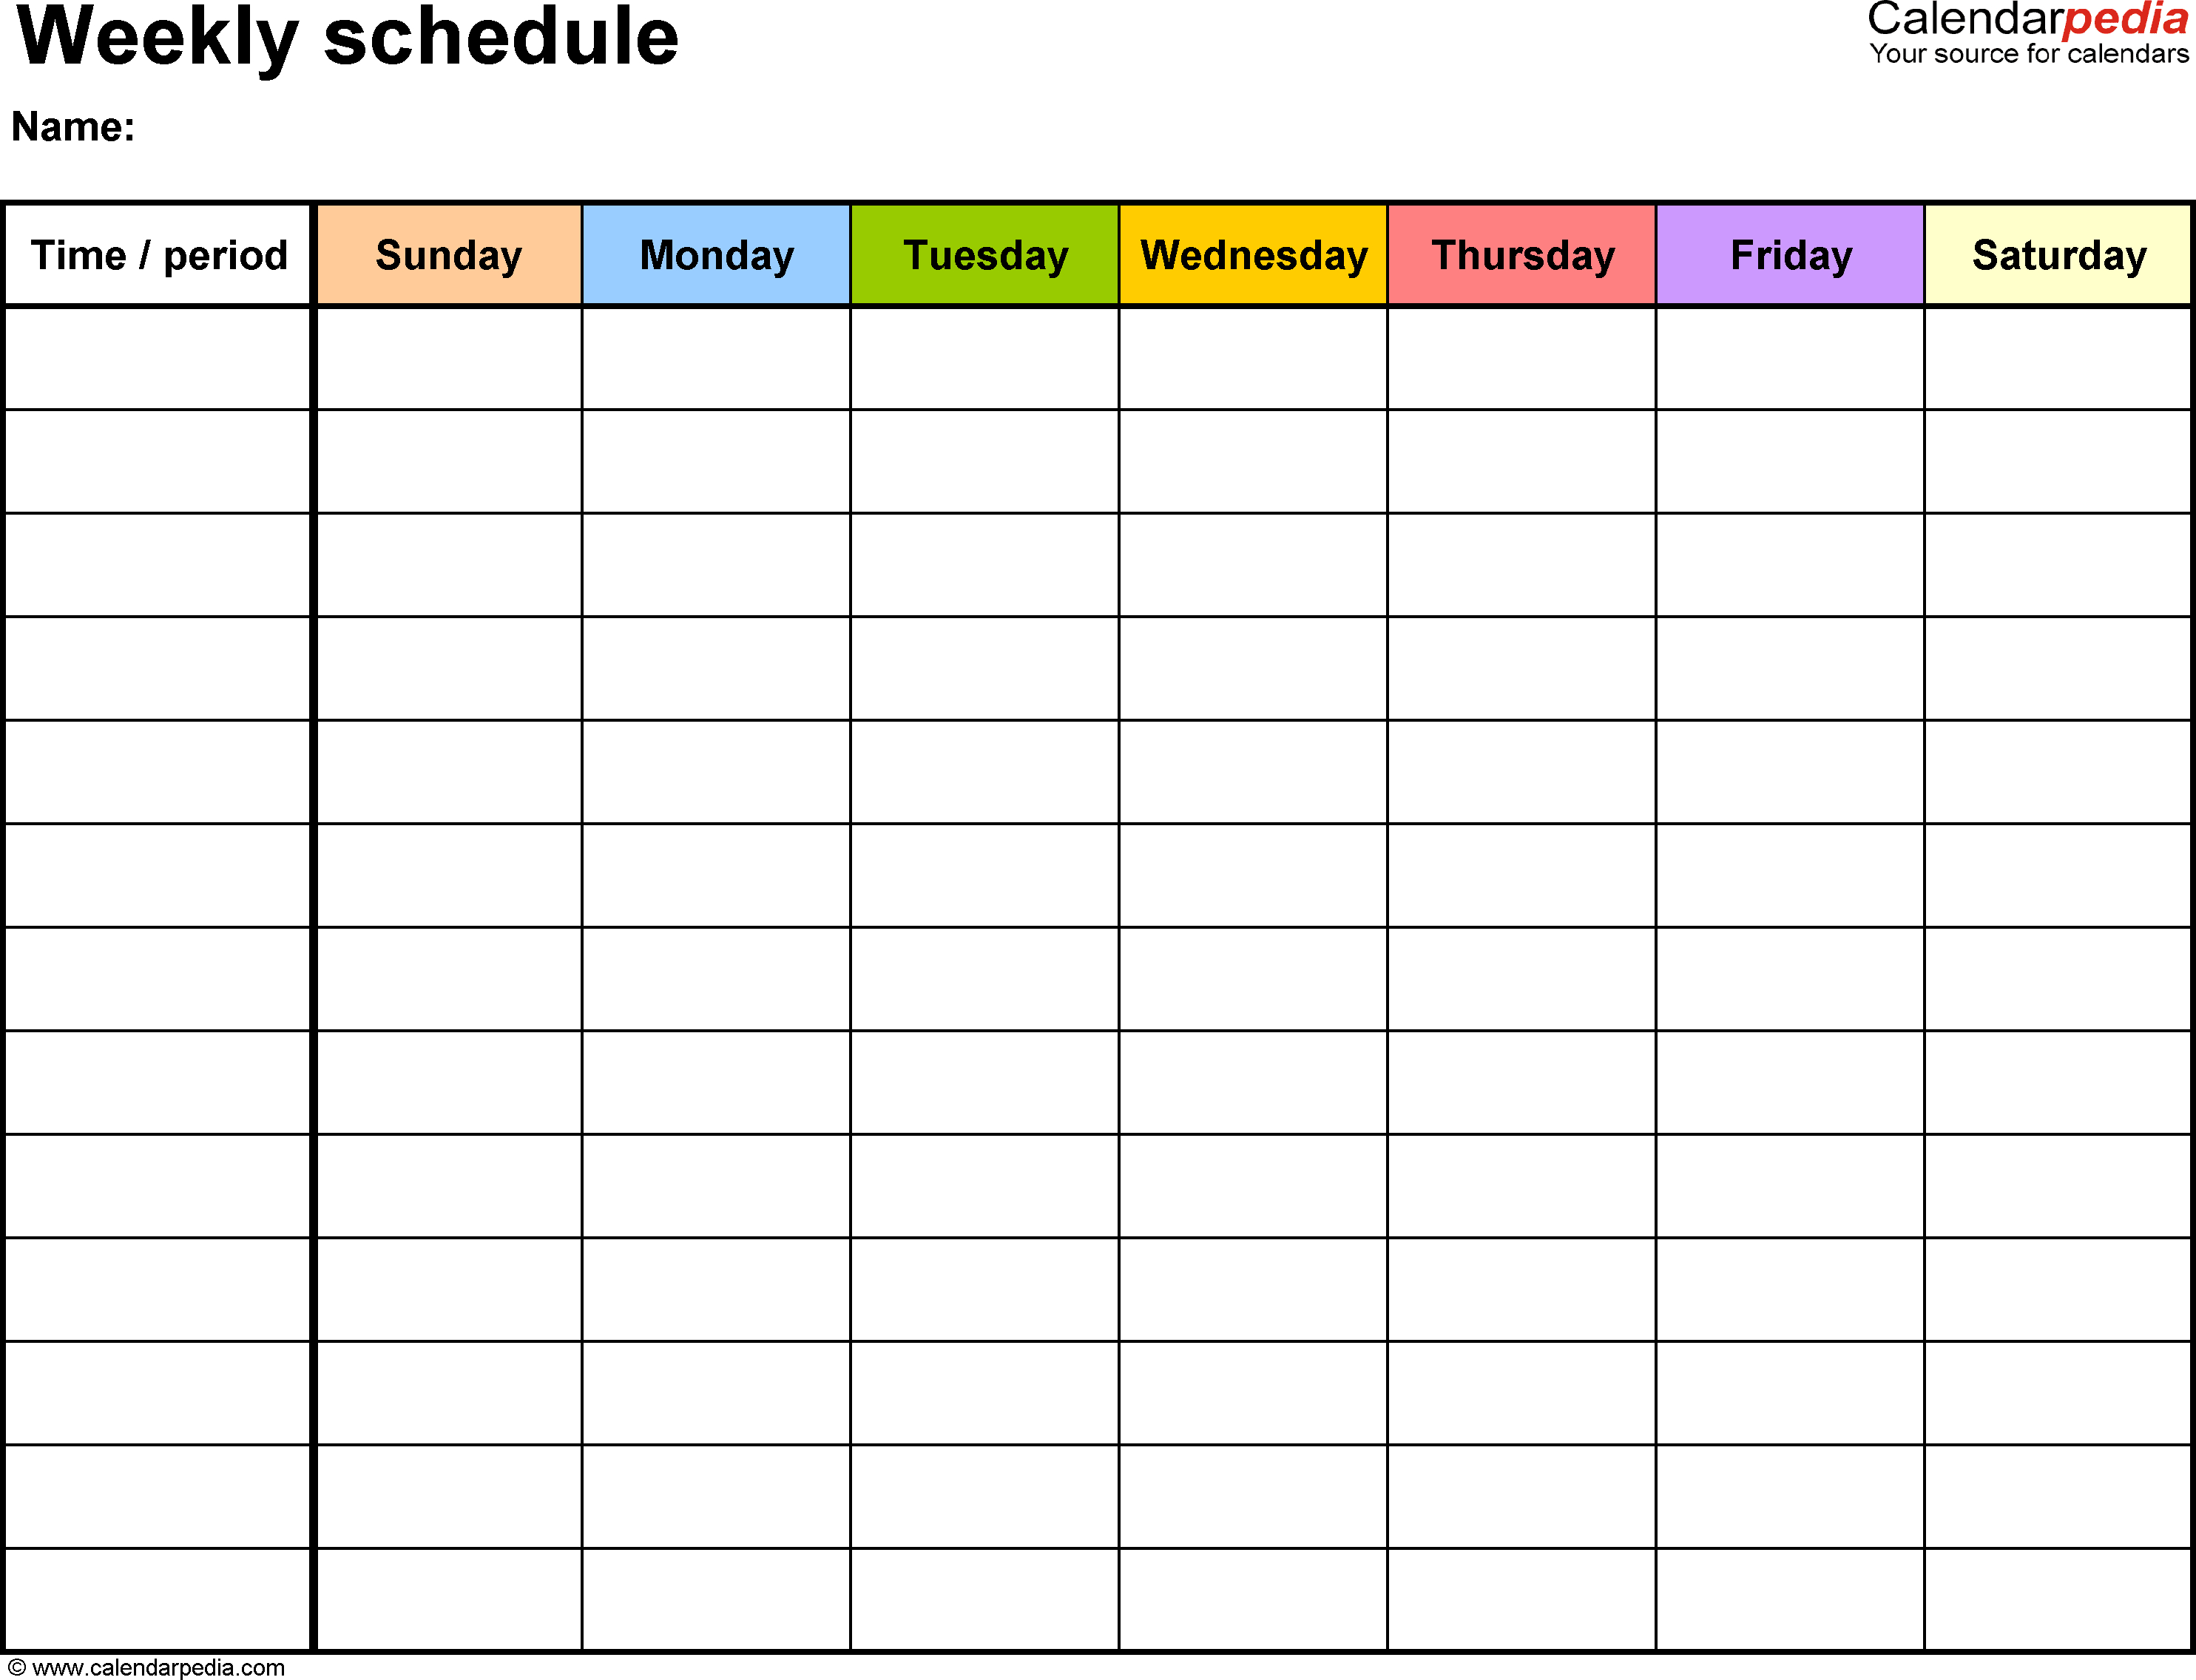 Free Weekly Schedule Templates For Excel – 18 Templates Monday – Friday Schedule Blank Template